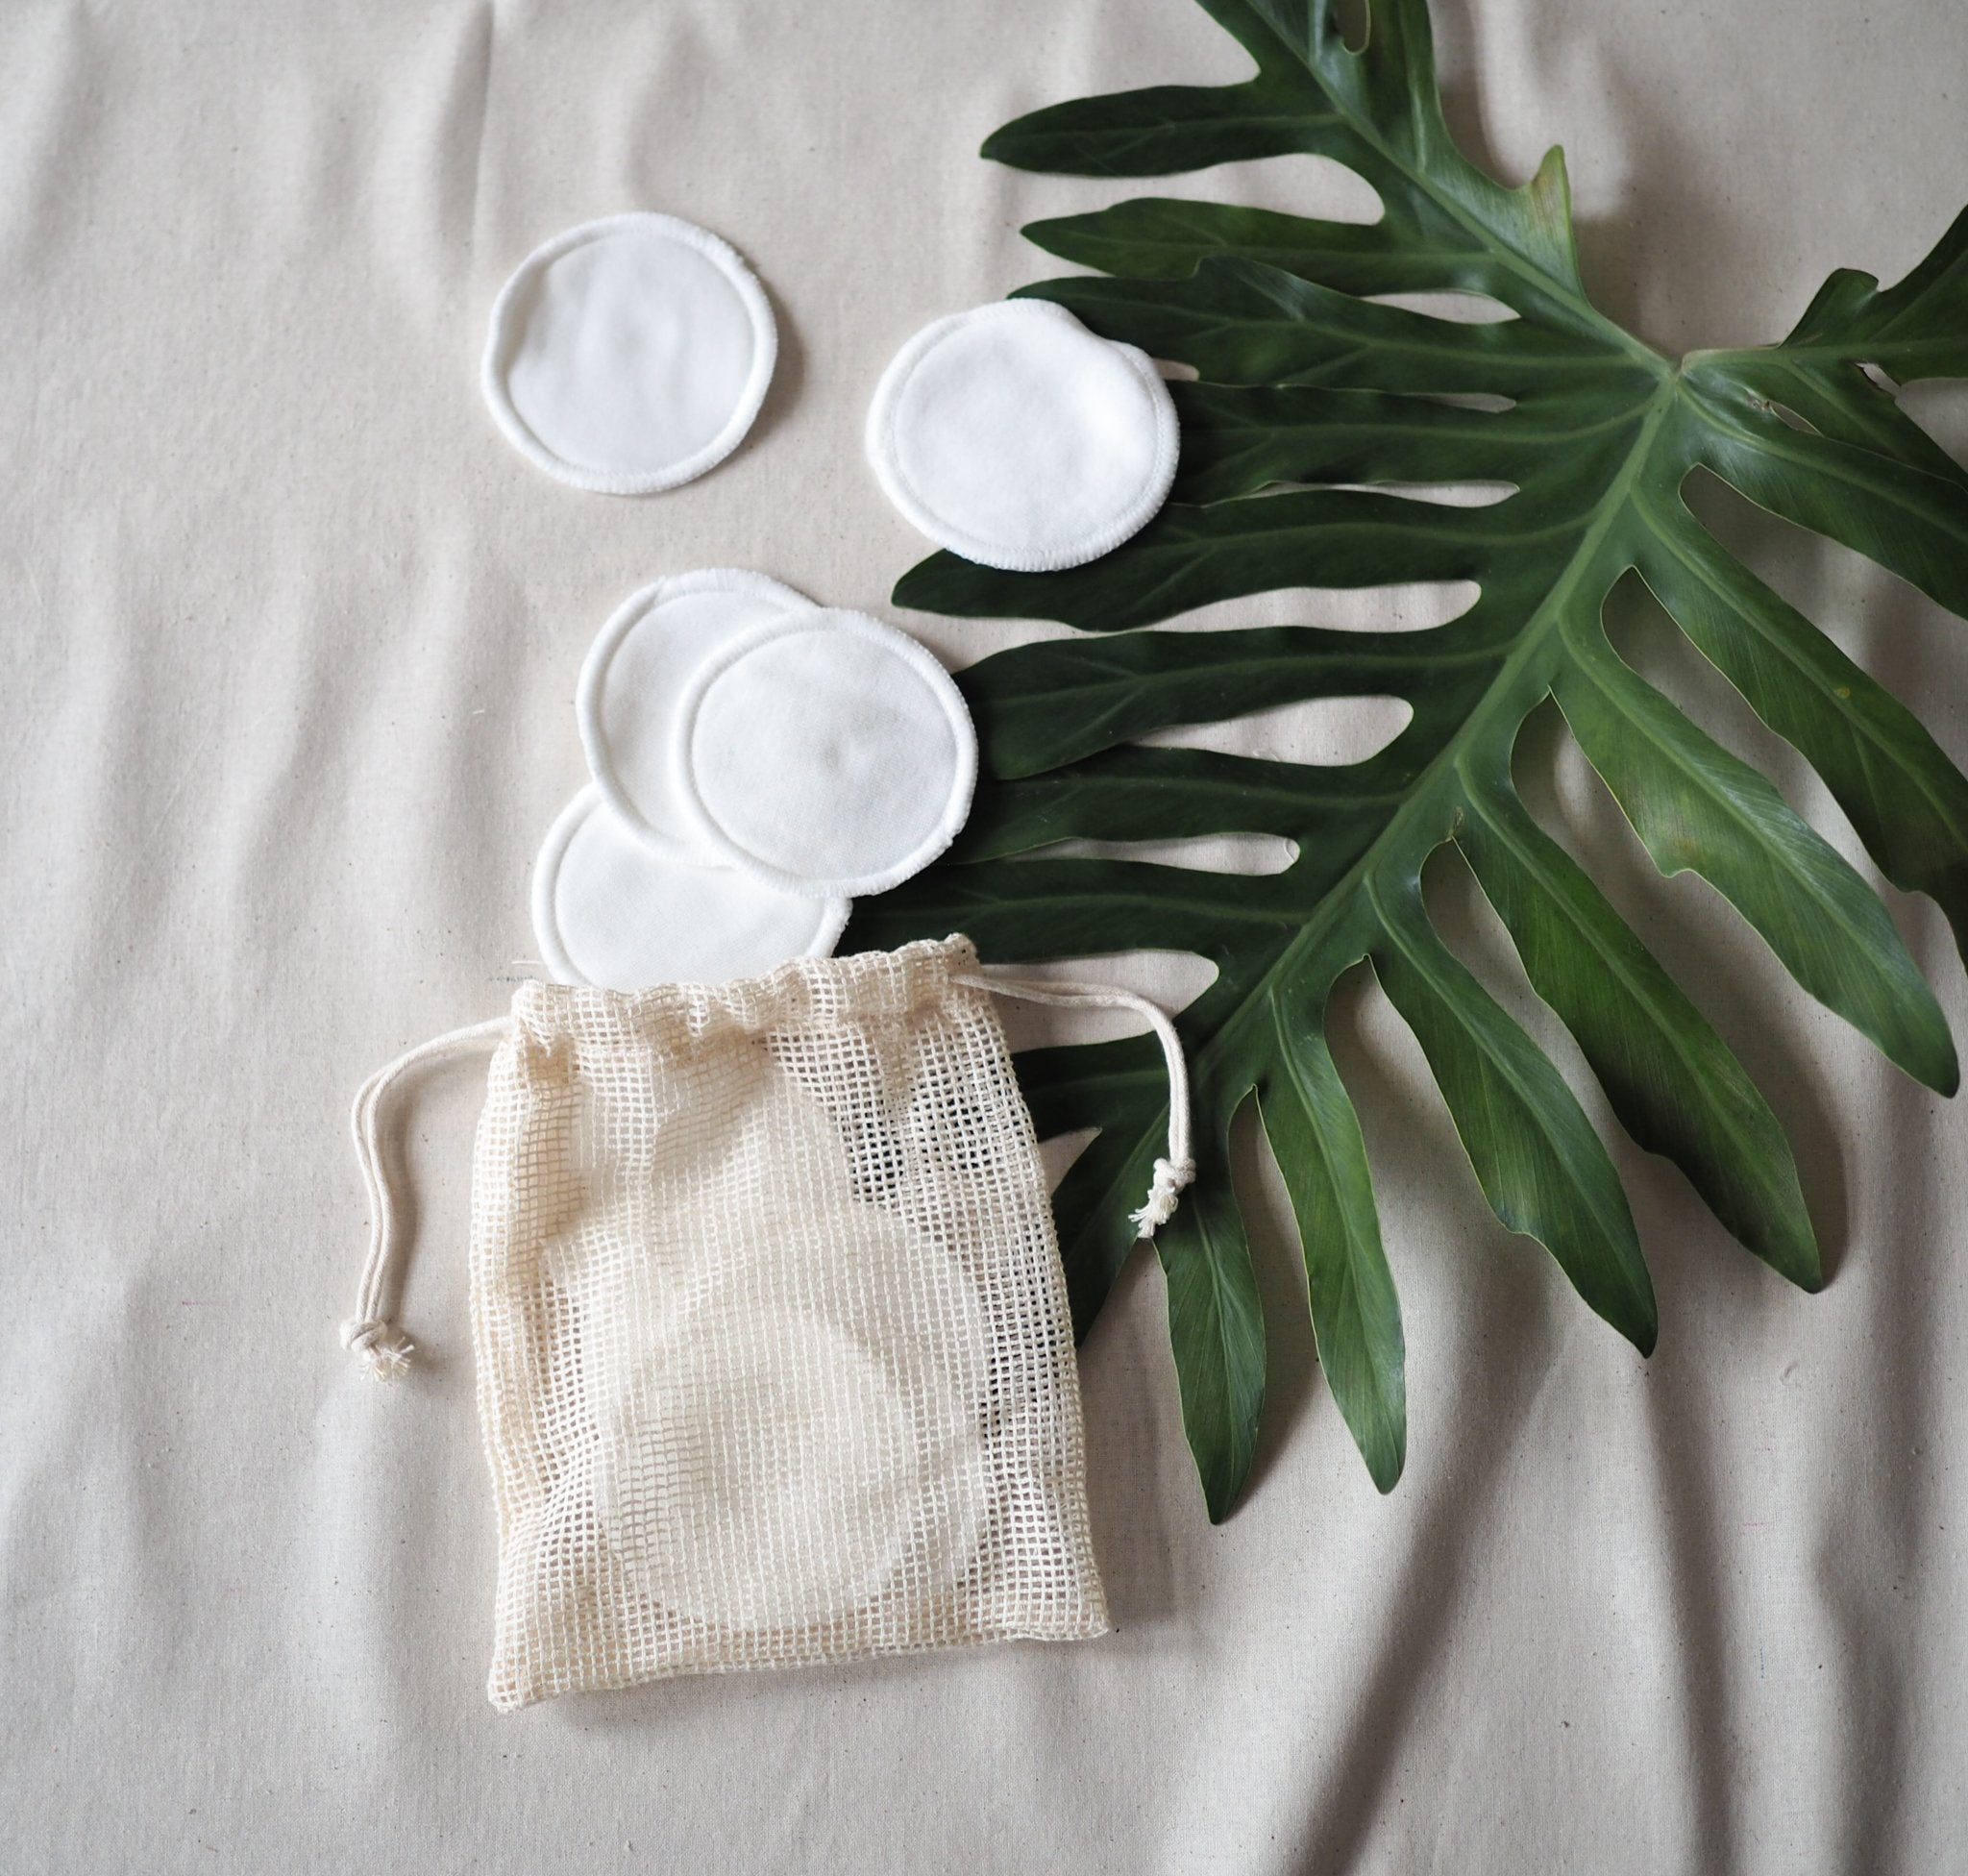 Brushiton - Reusable Makeup Remover Pads - last minute gift idea - melbourne